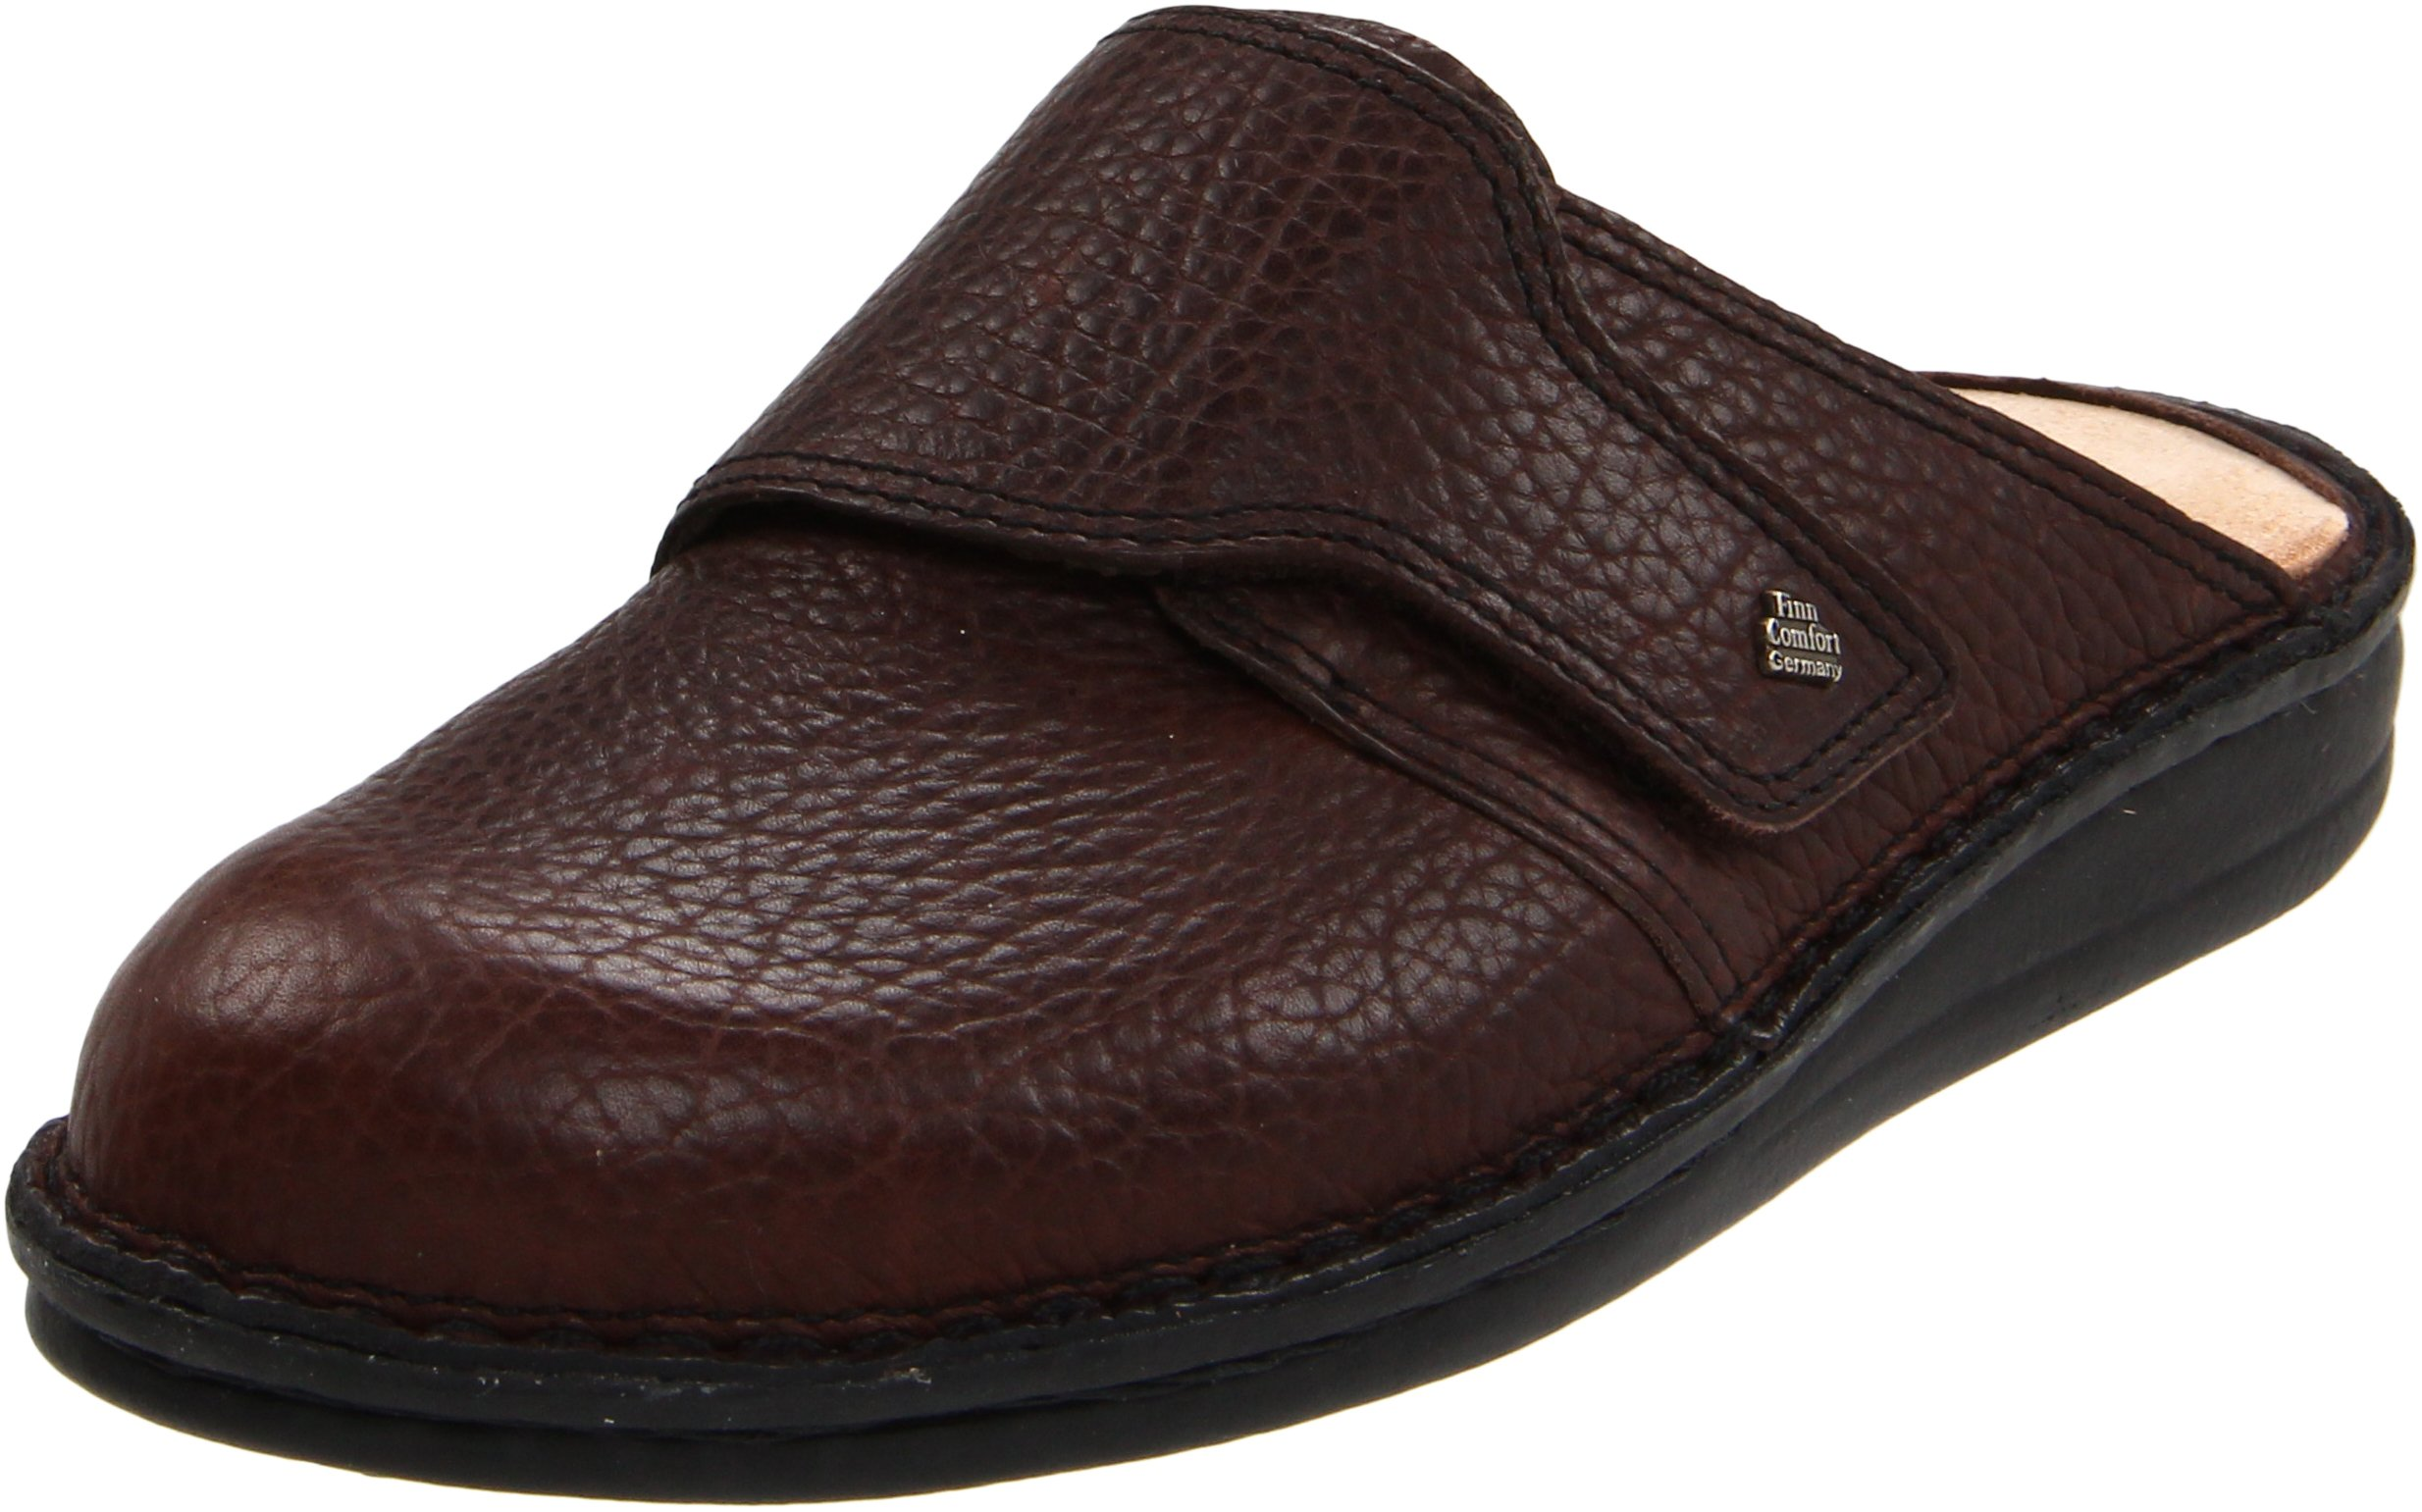 Finn Comfort Amalfi - 81515,Mocca Leather,38 (US Women's 7.5-8)